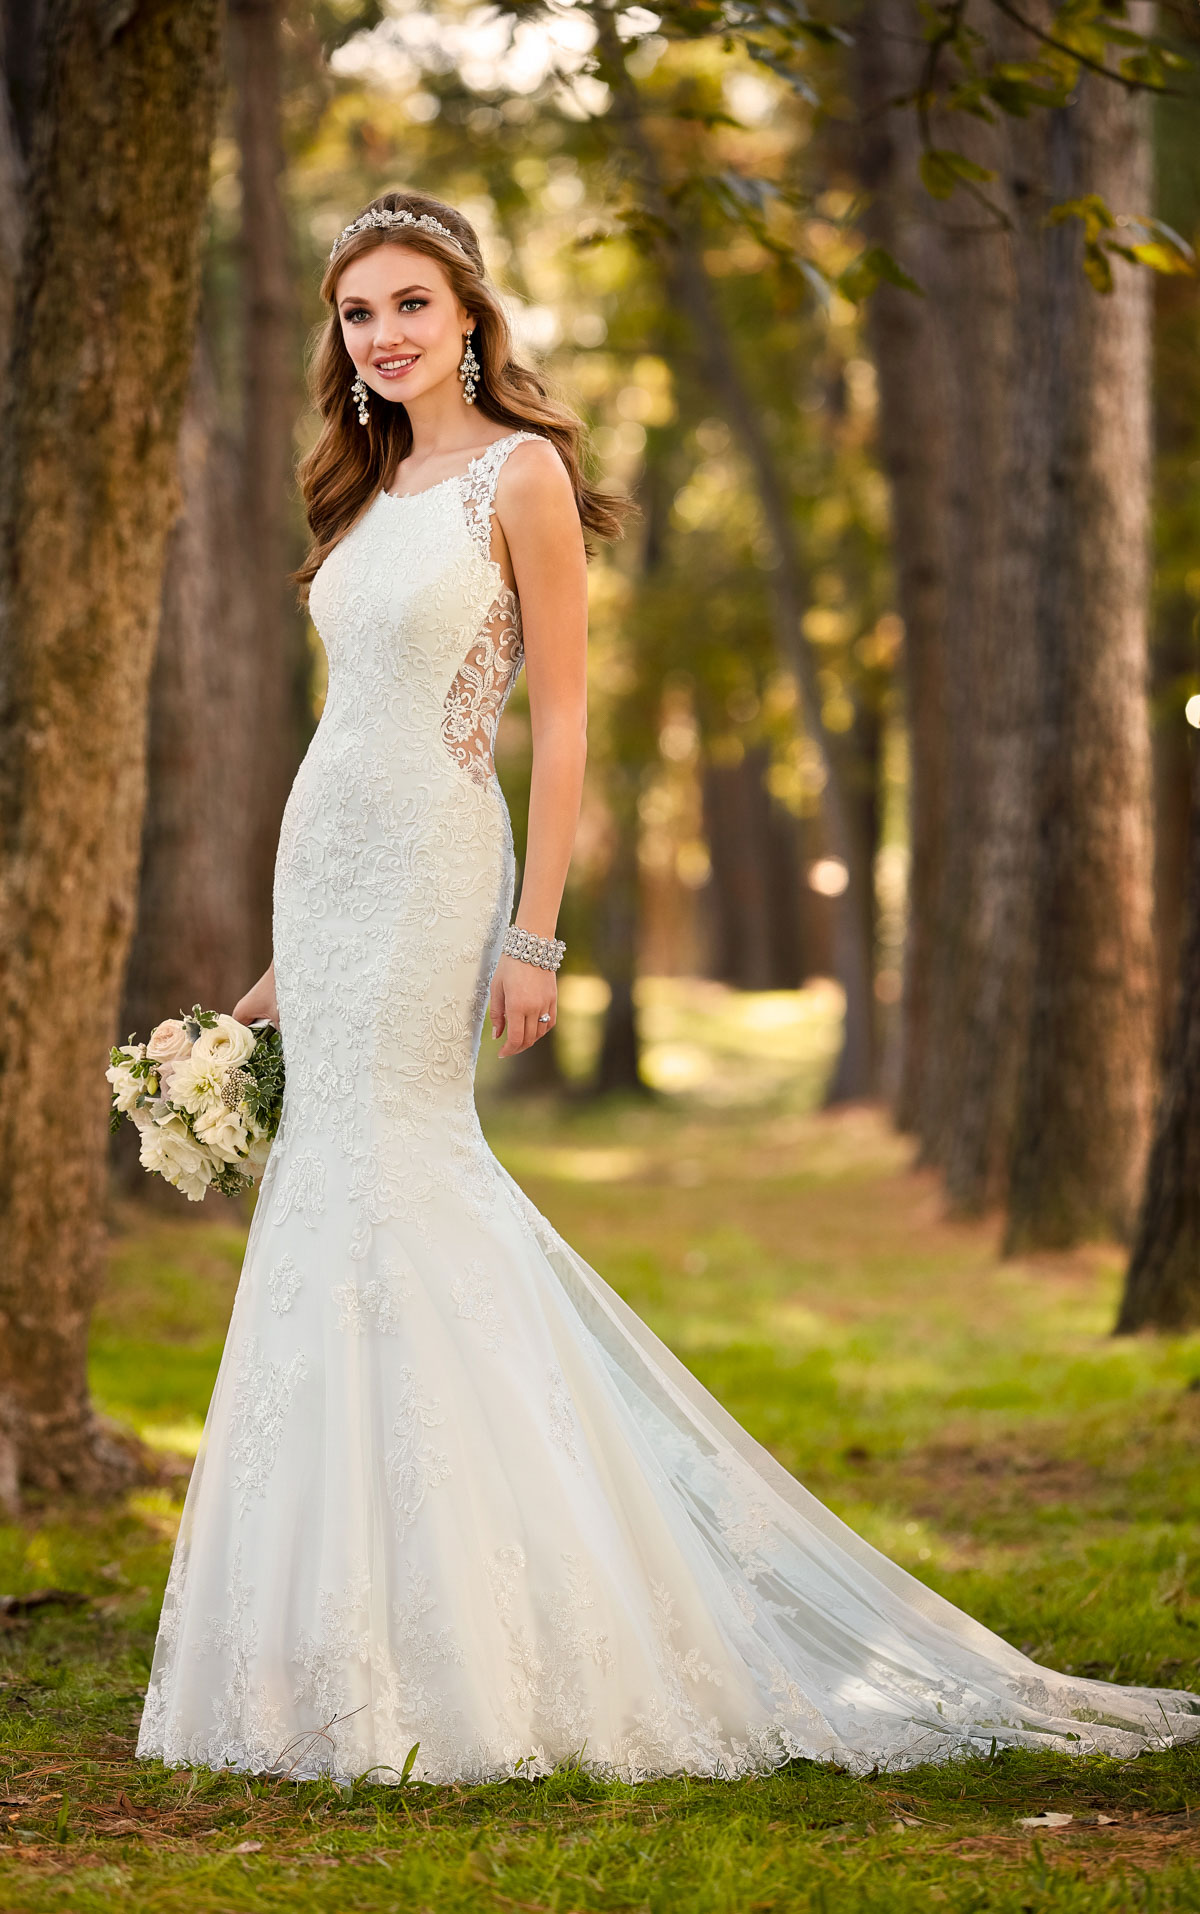 With A Modern High Neckline And Classic Romantic Lace This Backless Wedding Dress From Stella